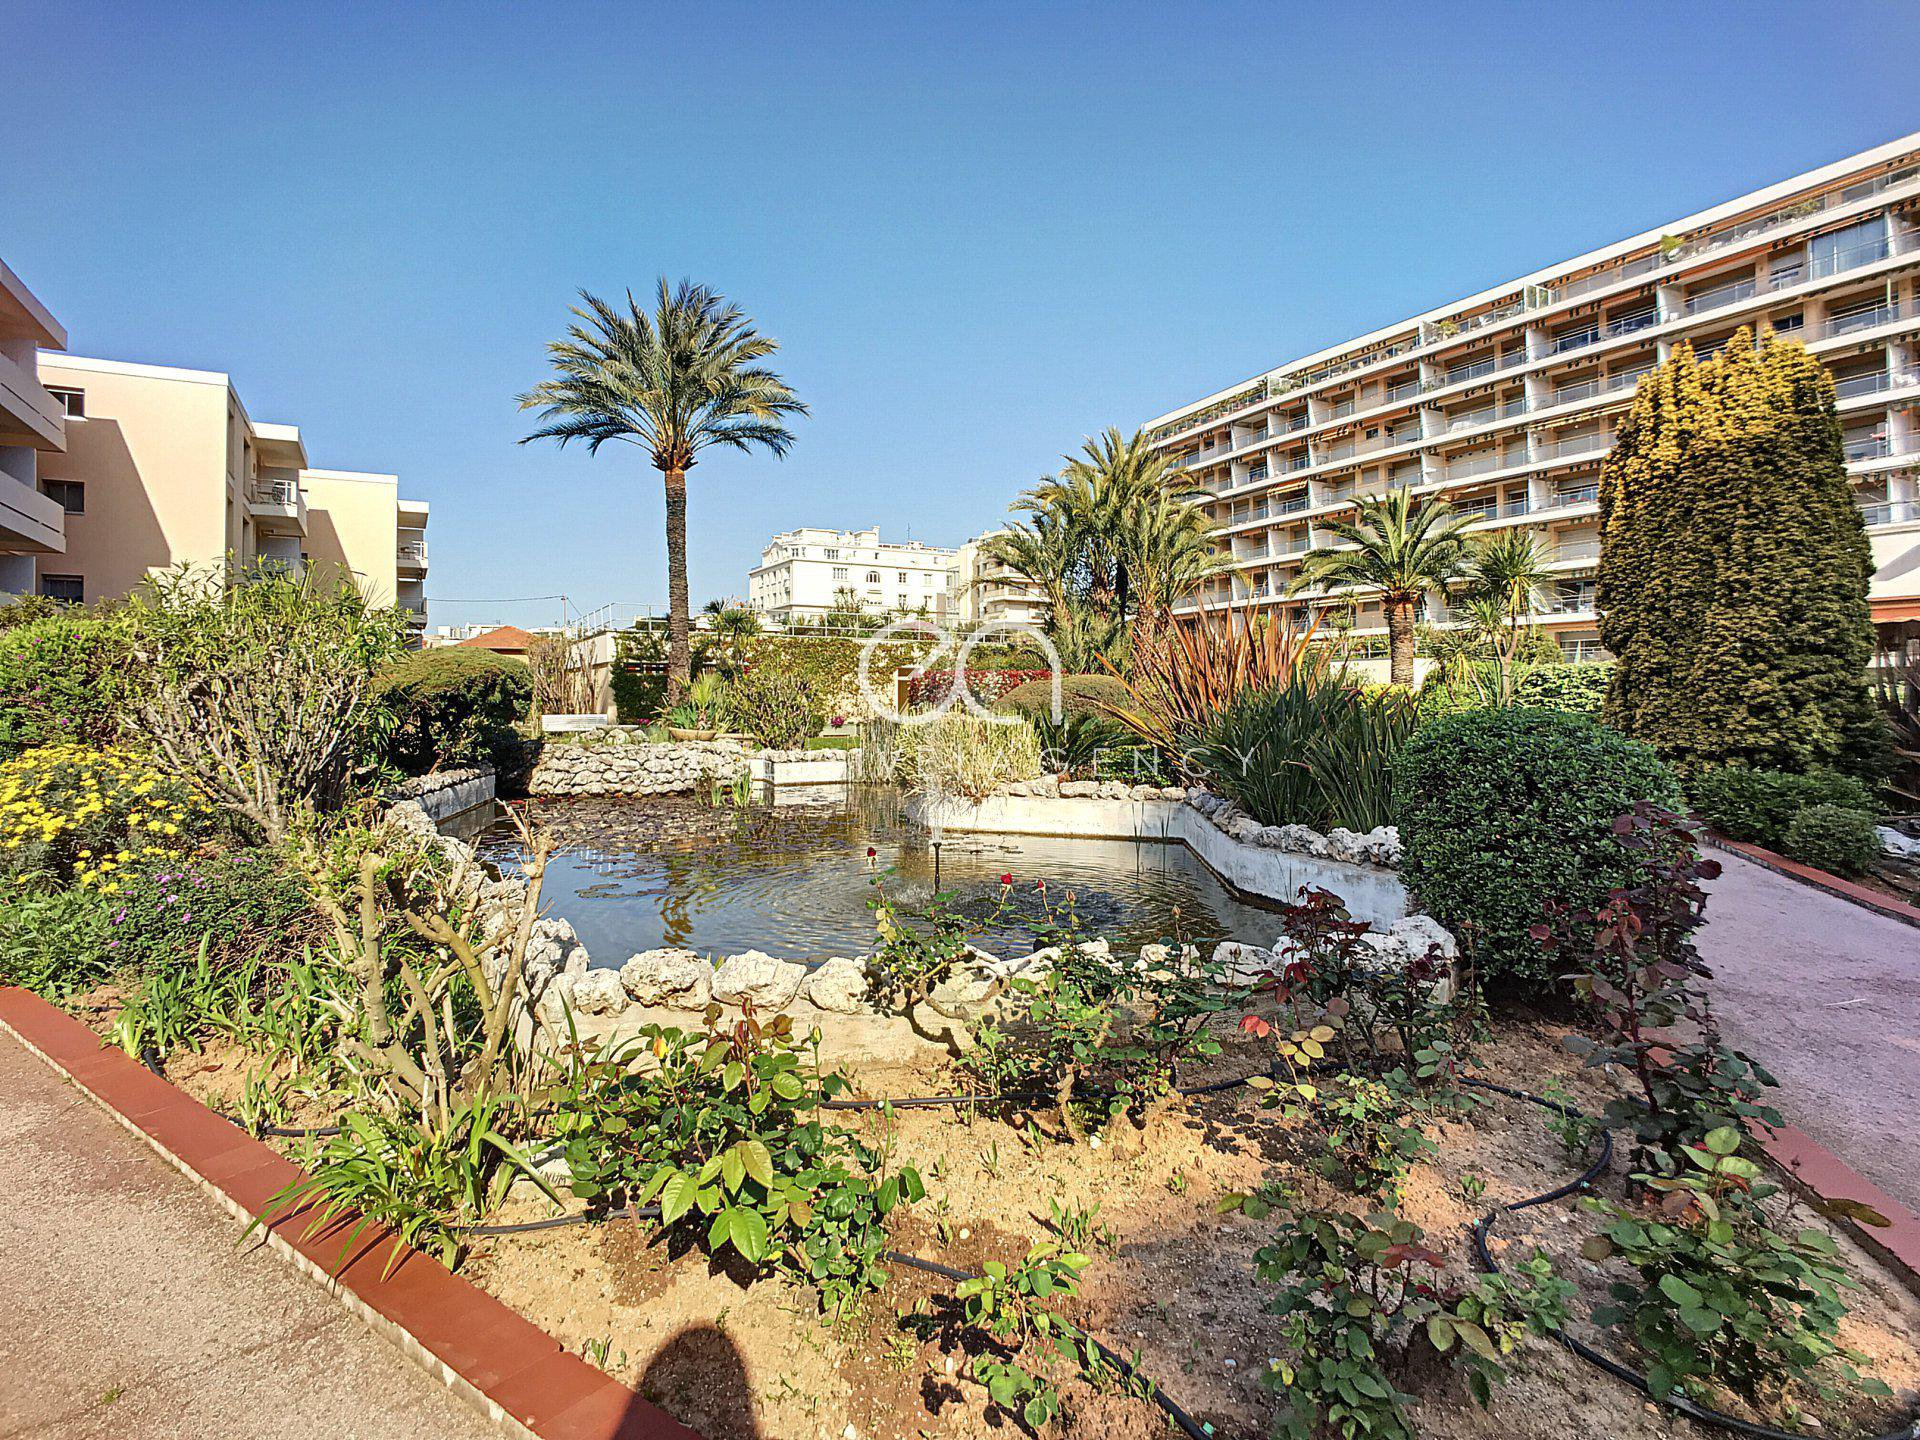 For sale Cannes Basse Californie - Studio on the last floor with sea view.